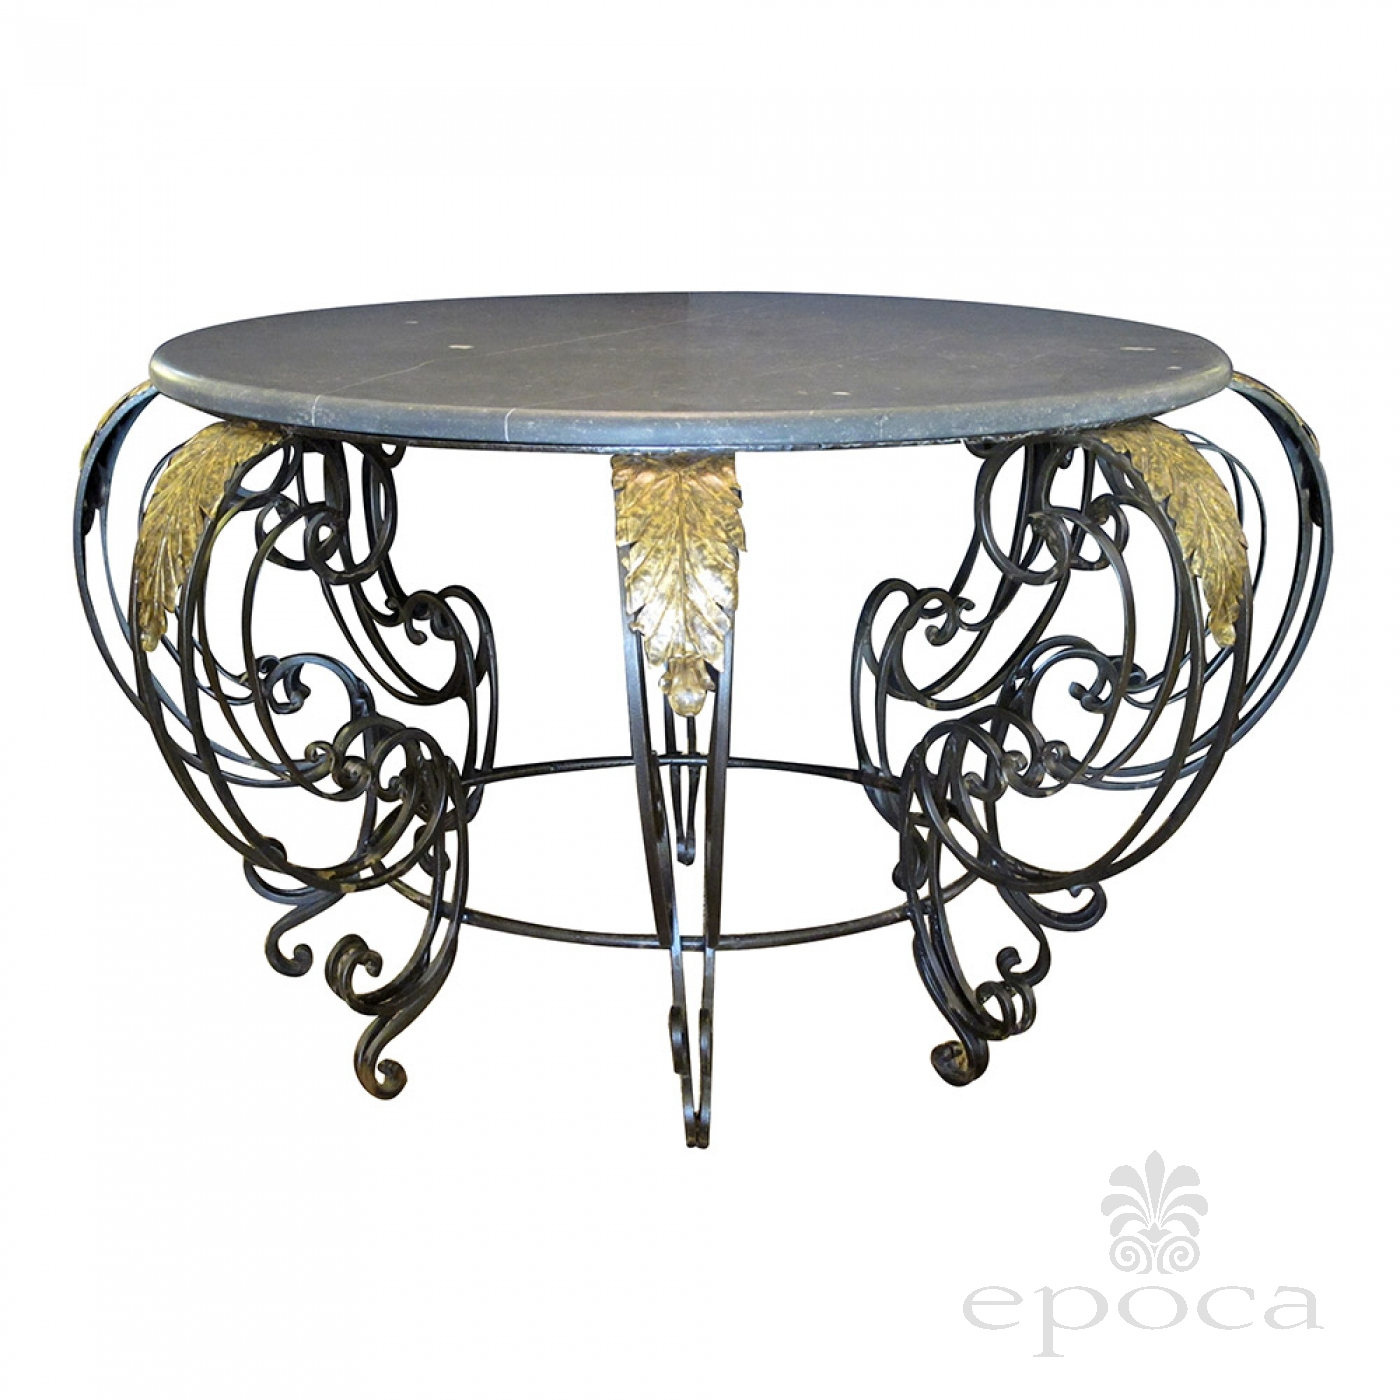 A Curvaceous French Rococo Style Wrought iron Circular